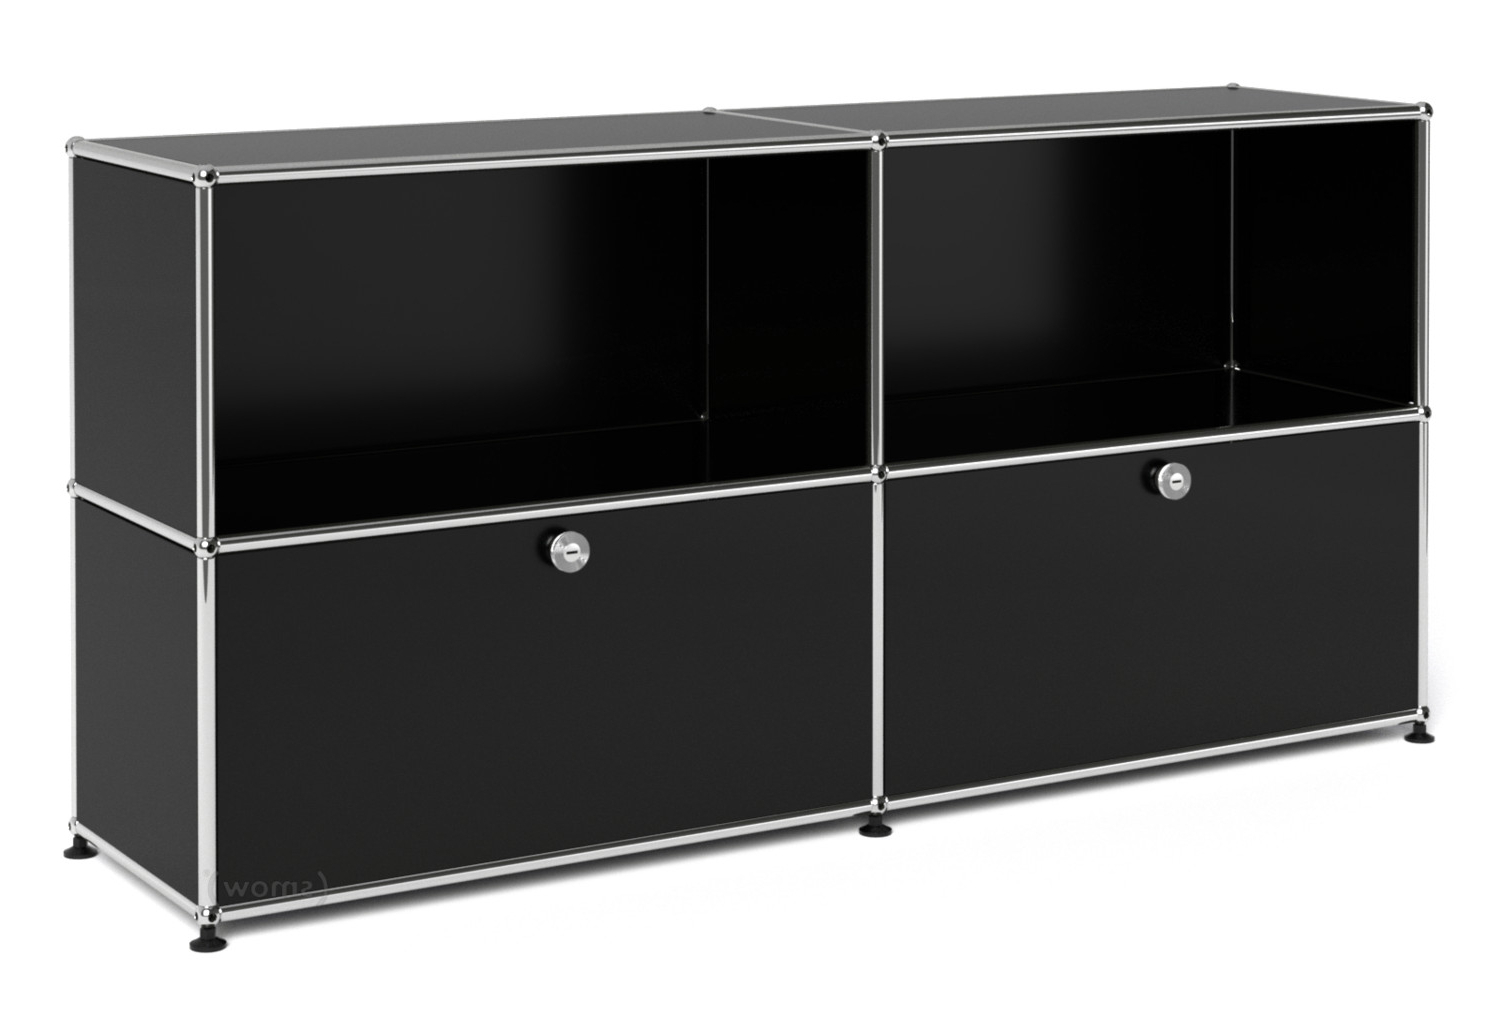 Well Known Usm Haller Sideboard L With 2 Drop Down Doorsfritz Haller & Paul Inside Girard 4 Door Sideboards (View 3 of 20)